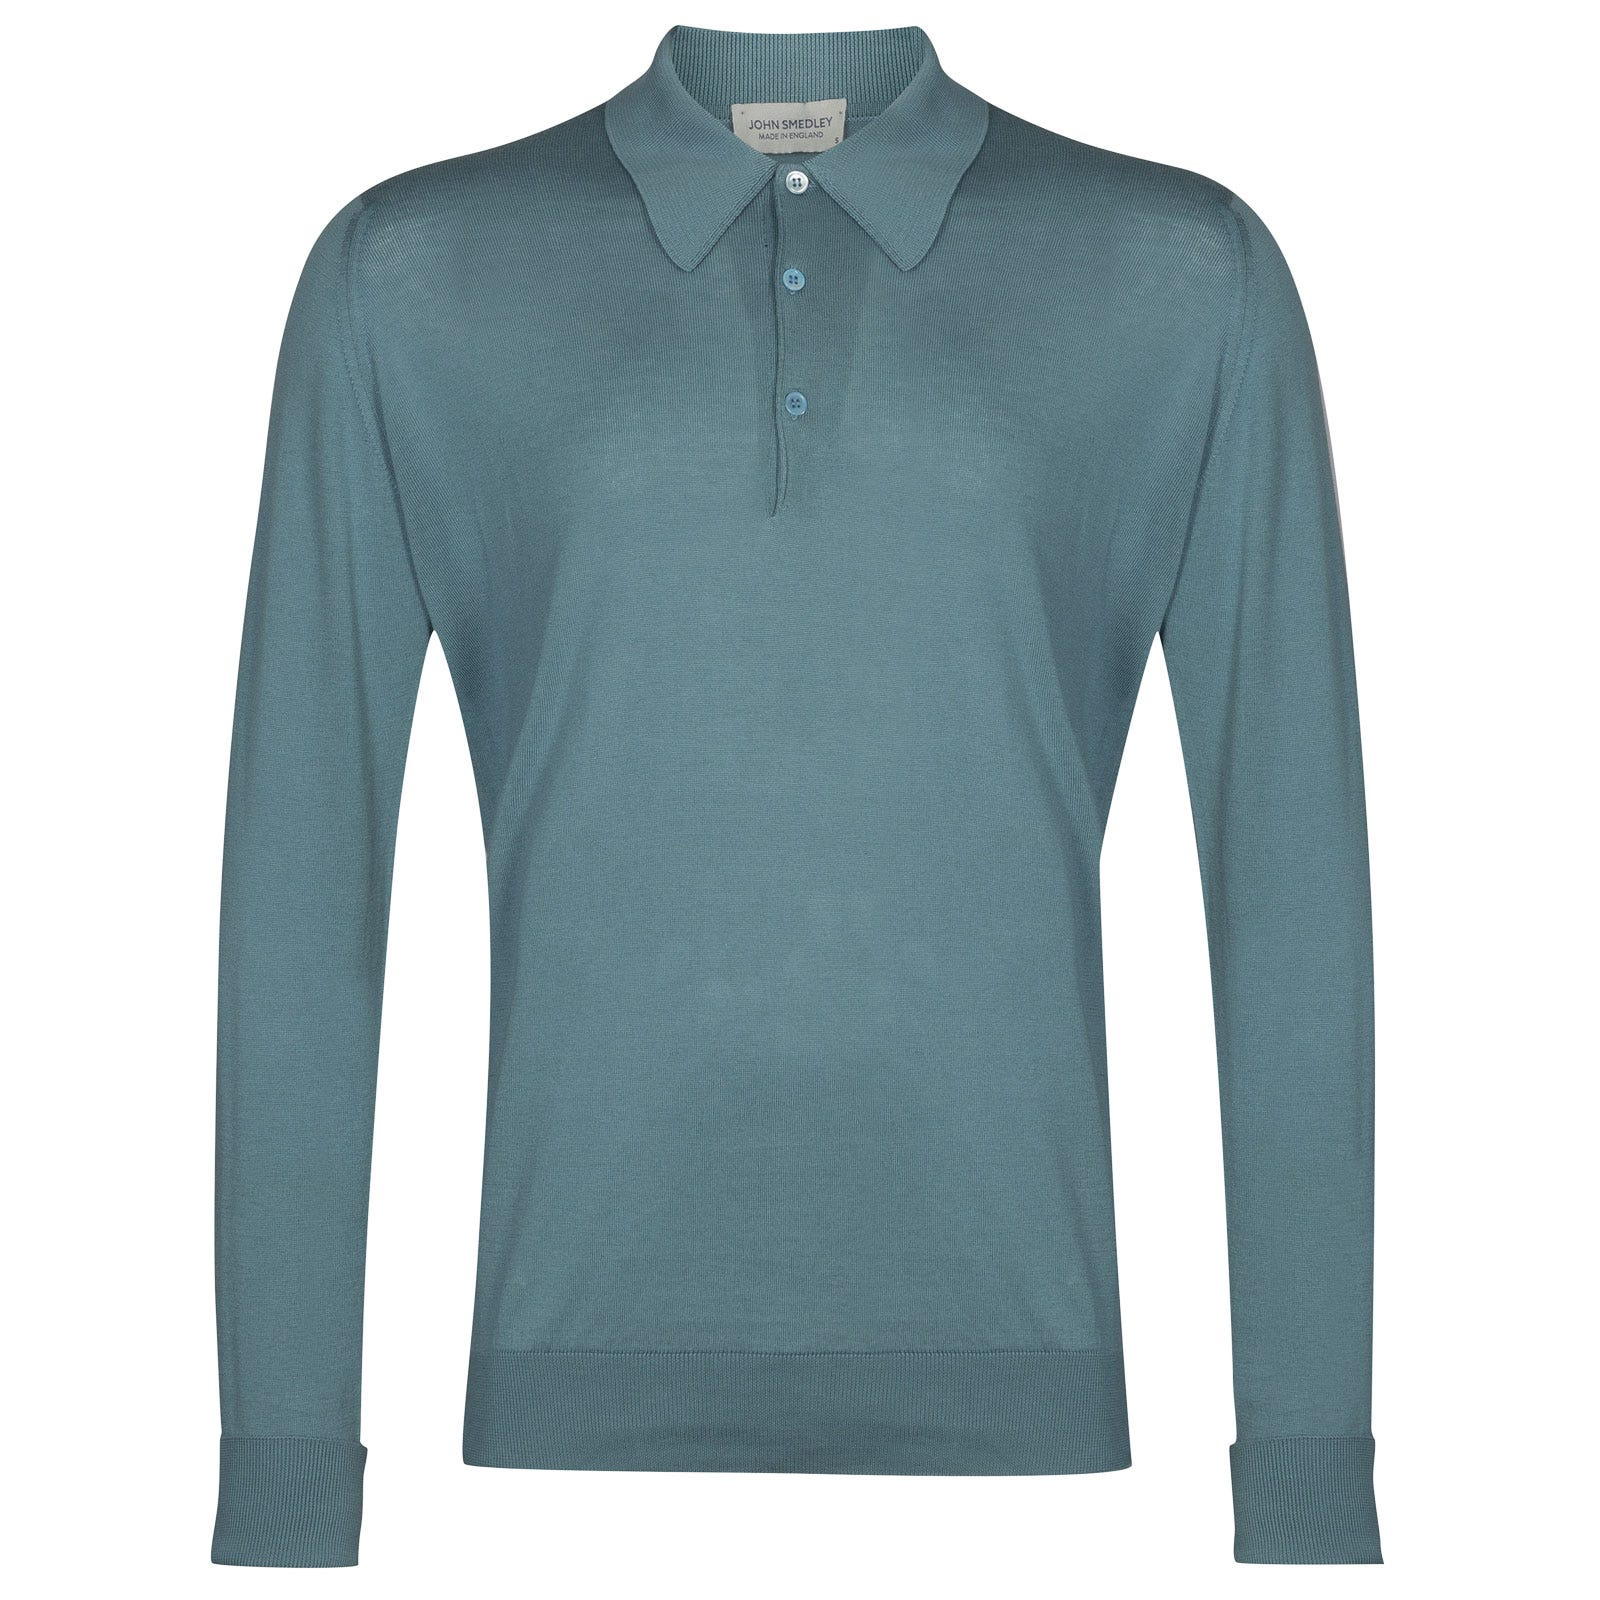 John Smedley finchley Sea Island Cotton Shirt in Summit Blue-XXL